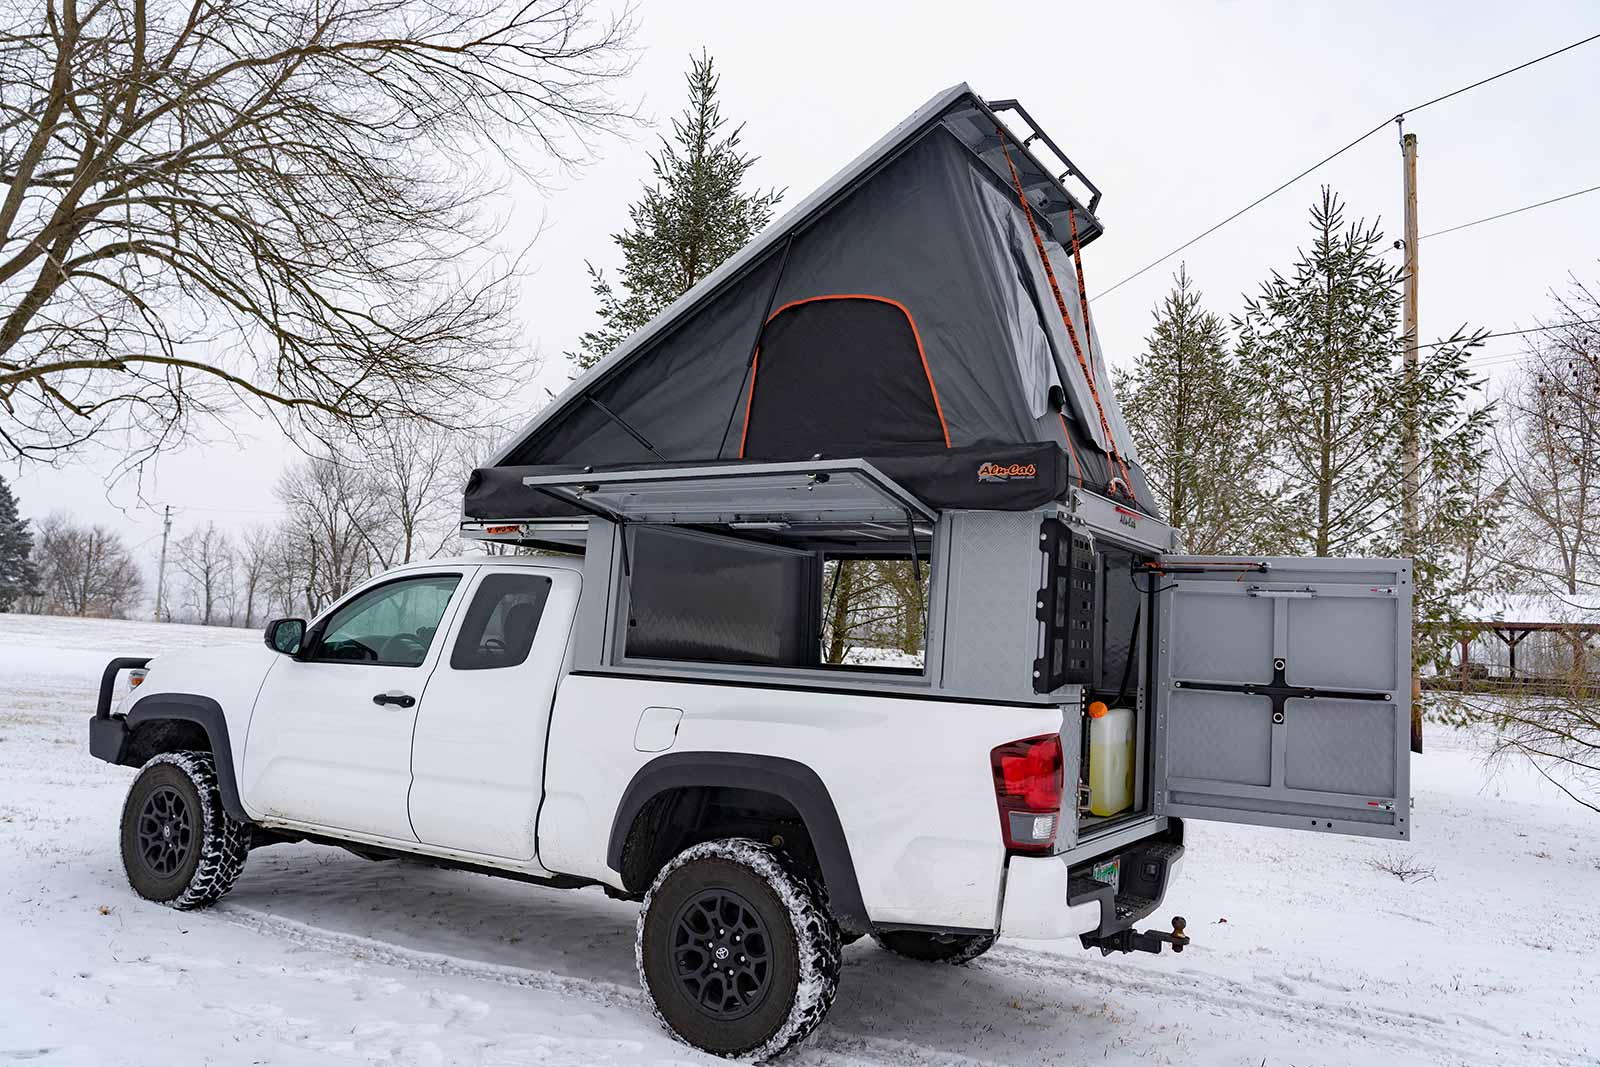 Online Garage: 2019 Toyota Tacoma outfitted with Alu-Cab Canopy Camper